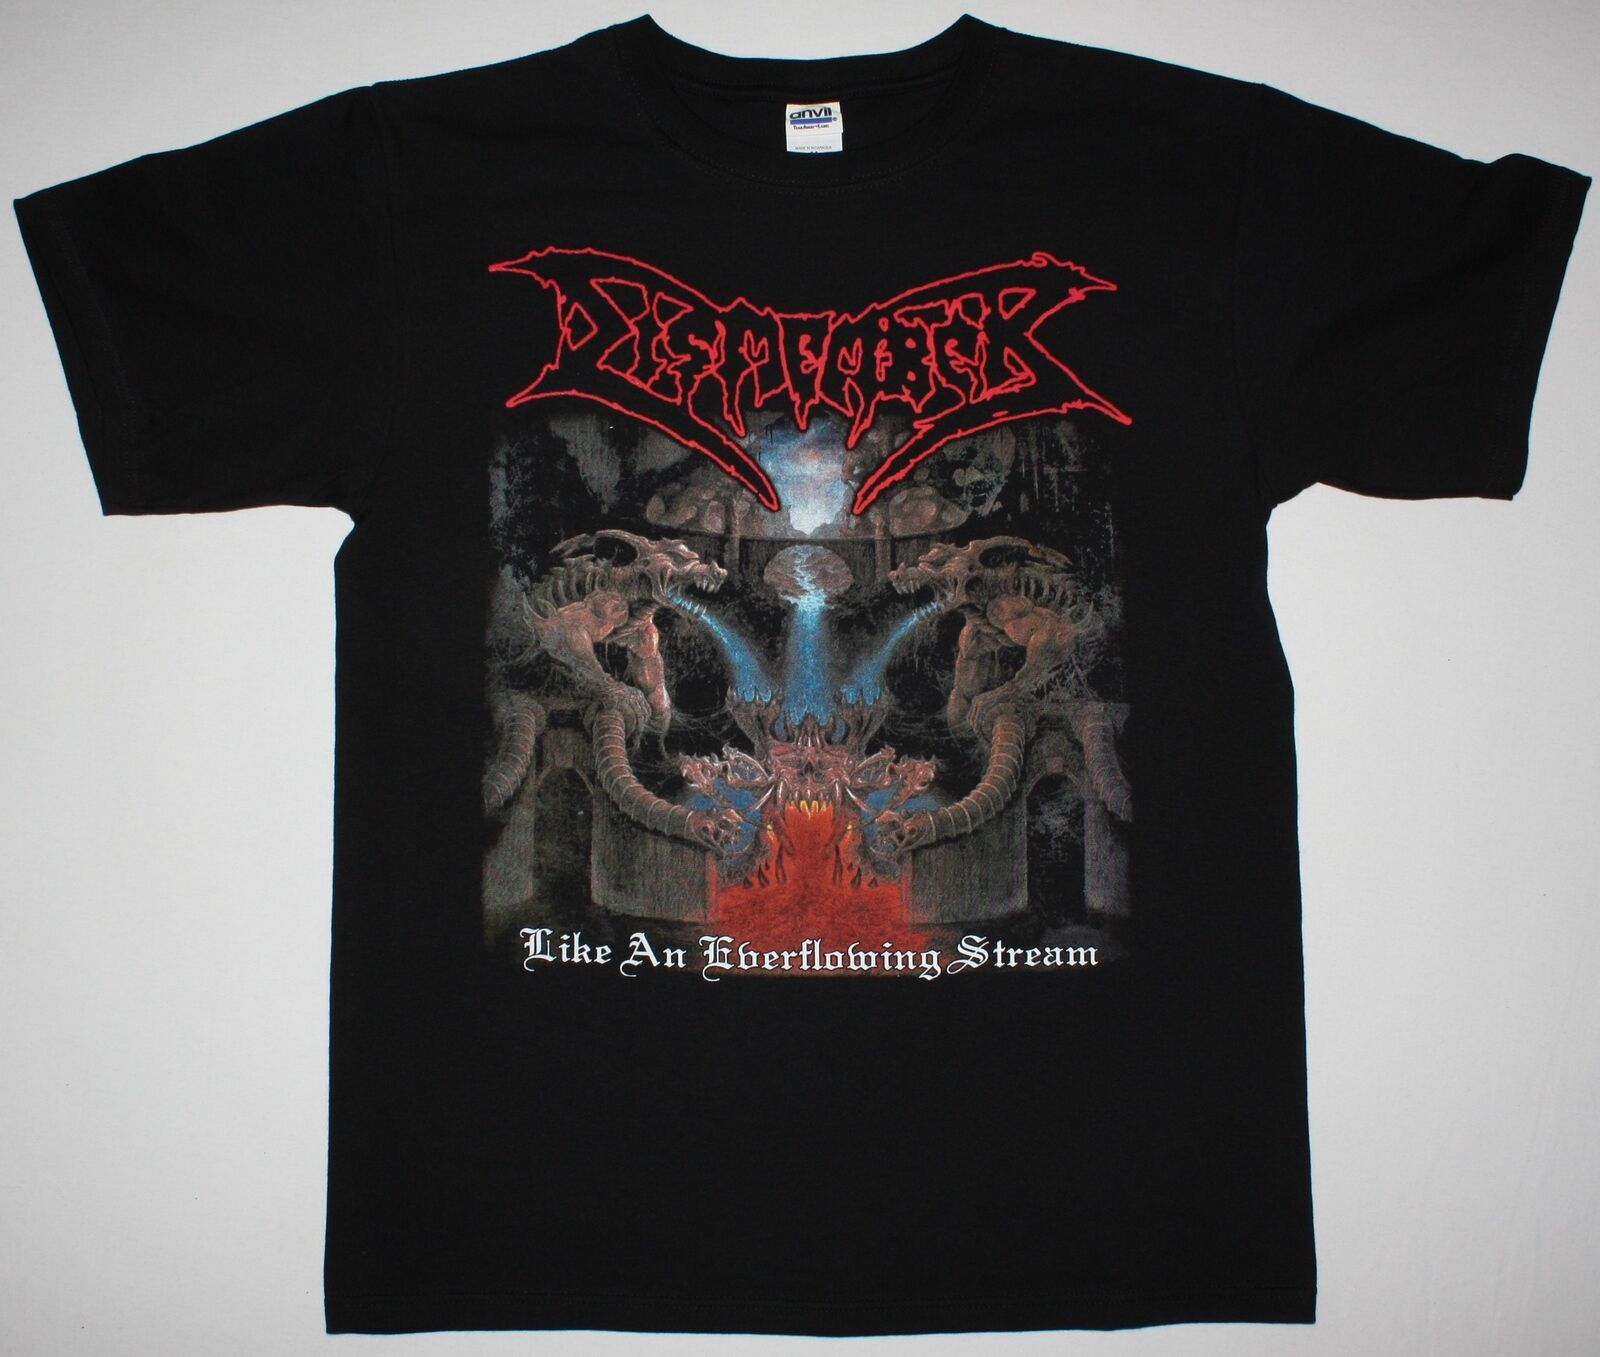 DISMEMBER LIKE AN EVERFLOWING STREAM DEATH BENEDICTION NEW BLACK T SHIRT 100% Cotton Tee Shirt,Summer O Neck Tee,2019 Hot Tees